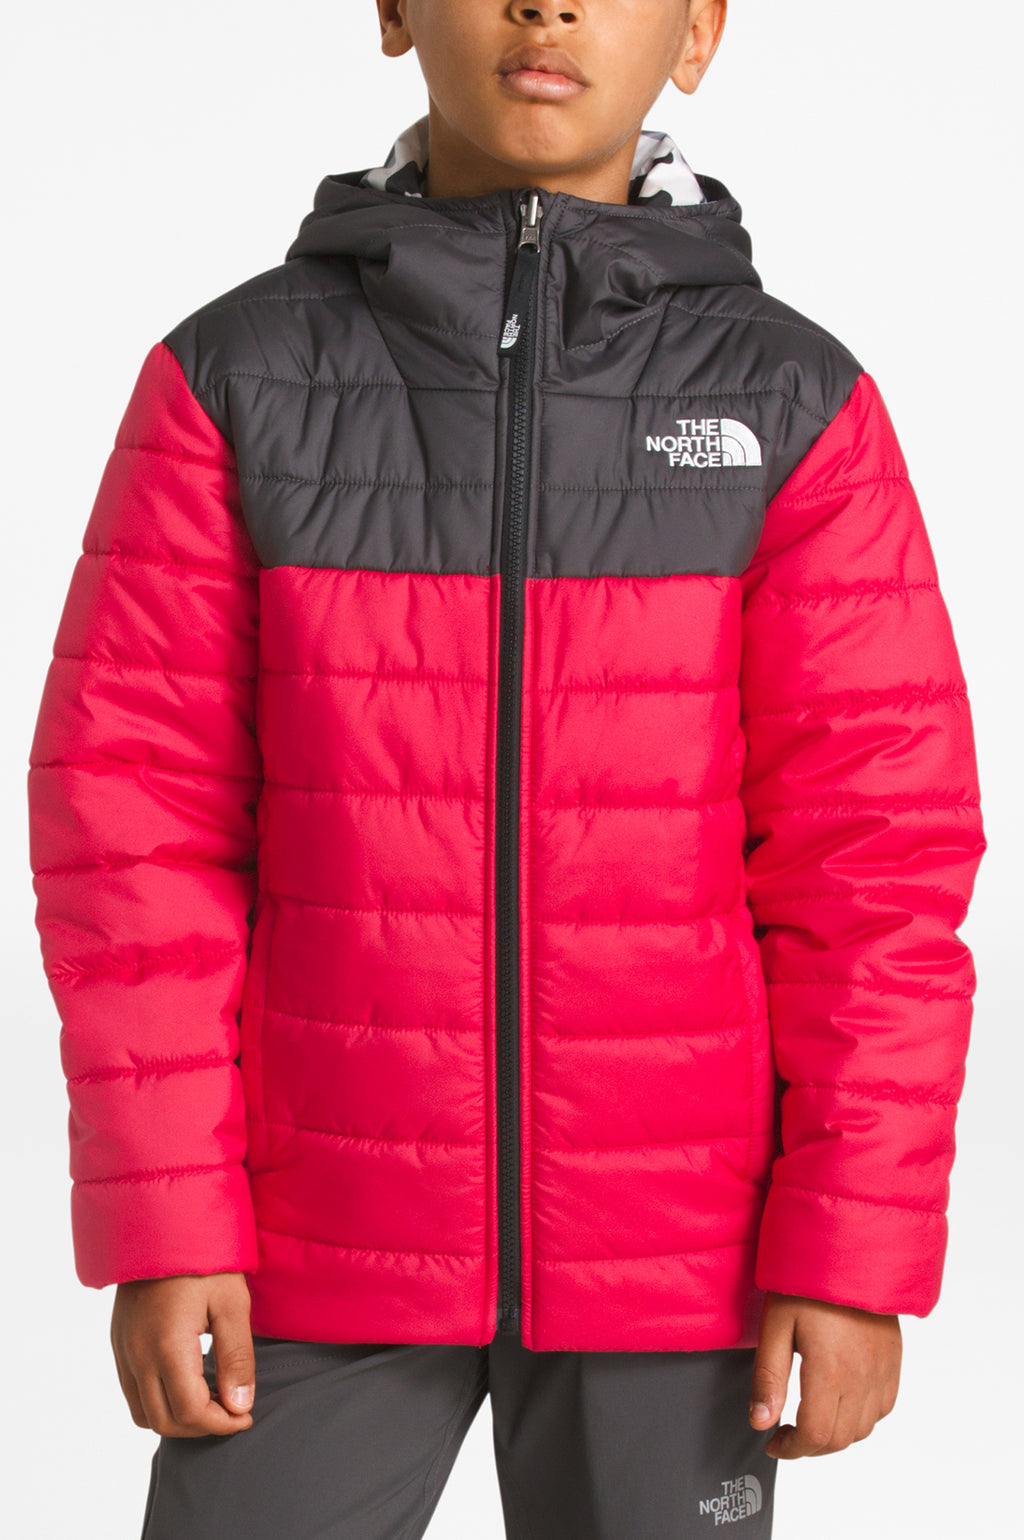 THE NORTH FACE YOUTH BOYS' REVERSIBLE PERRITO JACKET